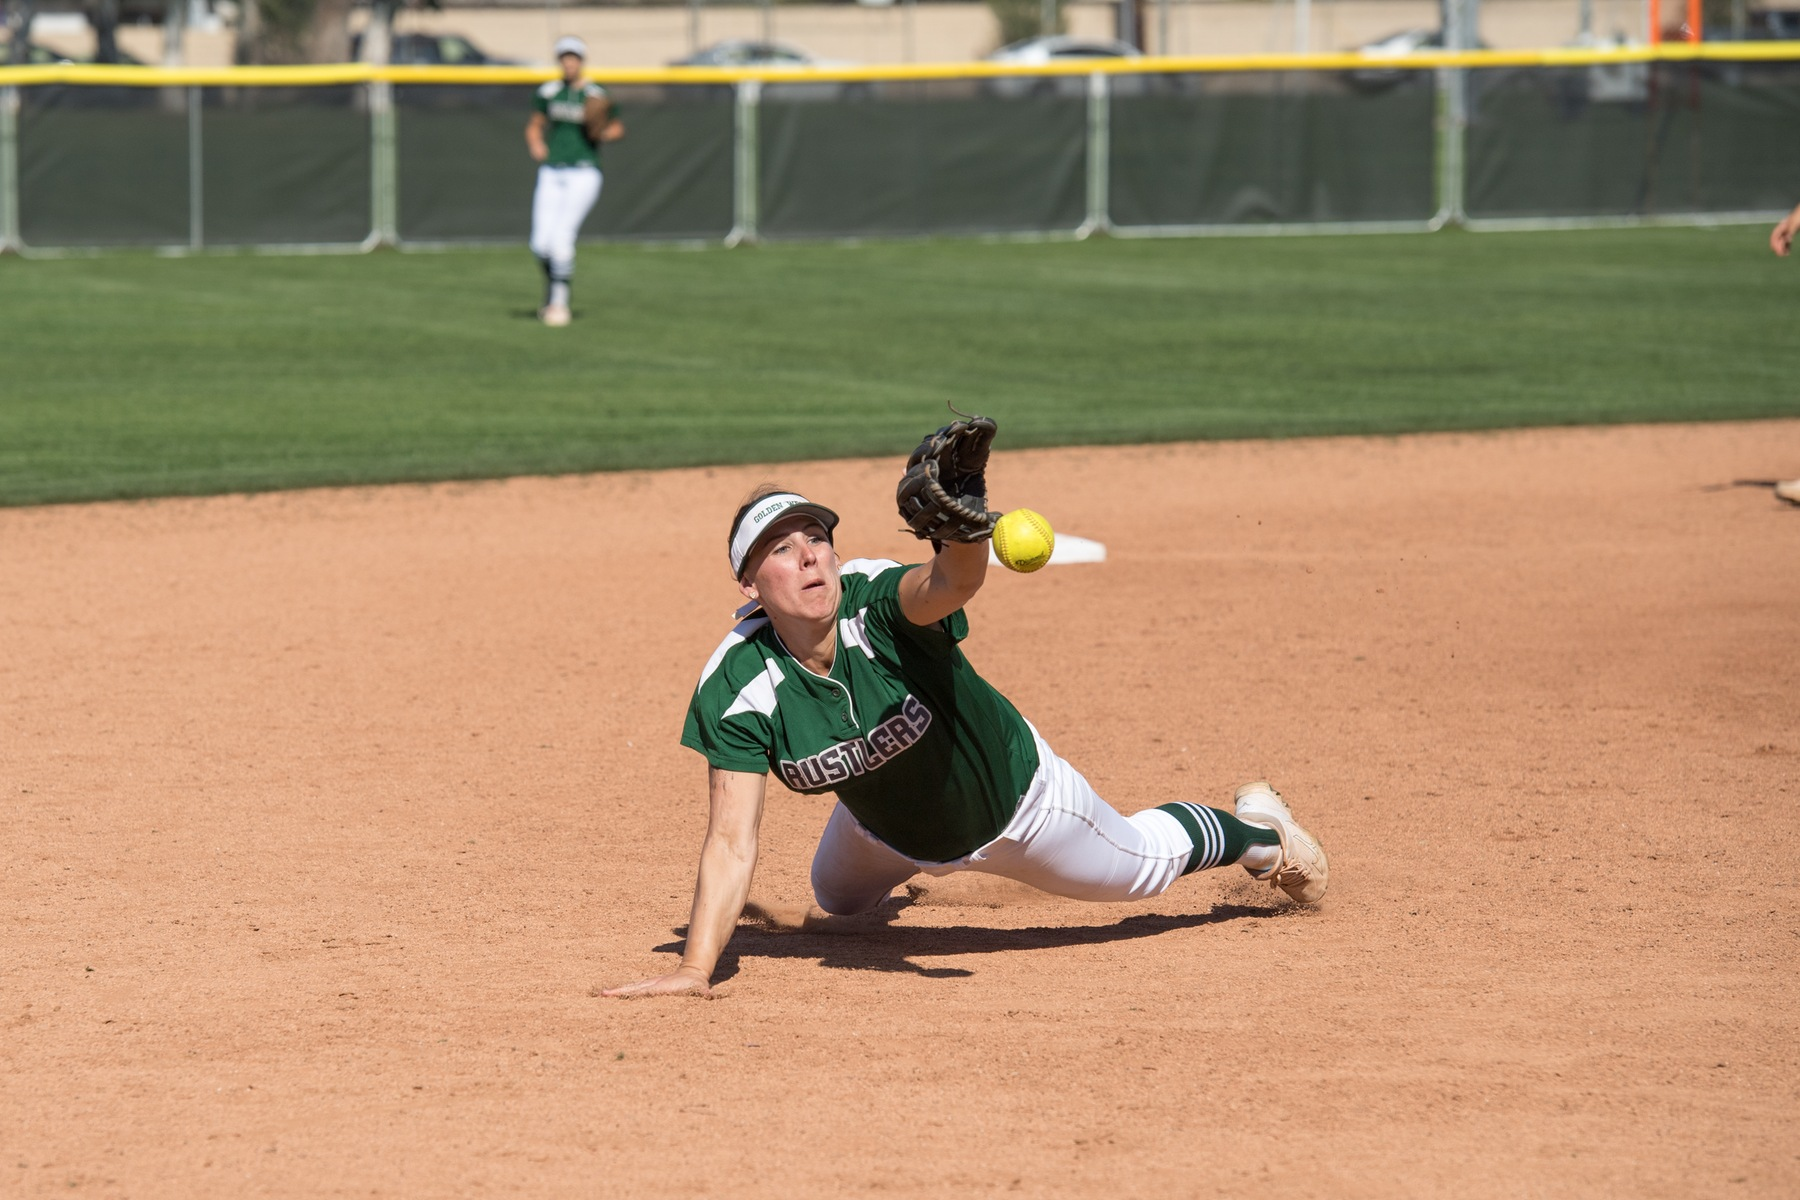 Softball: Shutout in Tough Loss to Rival